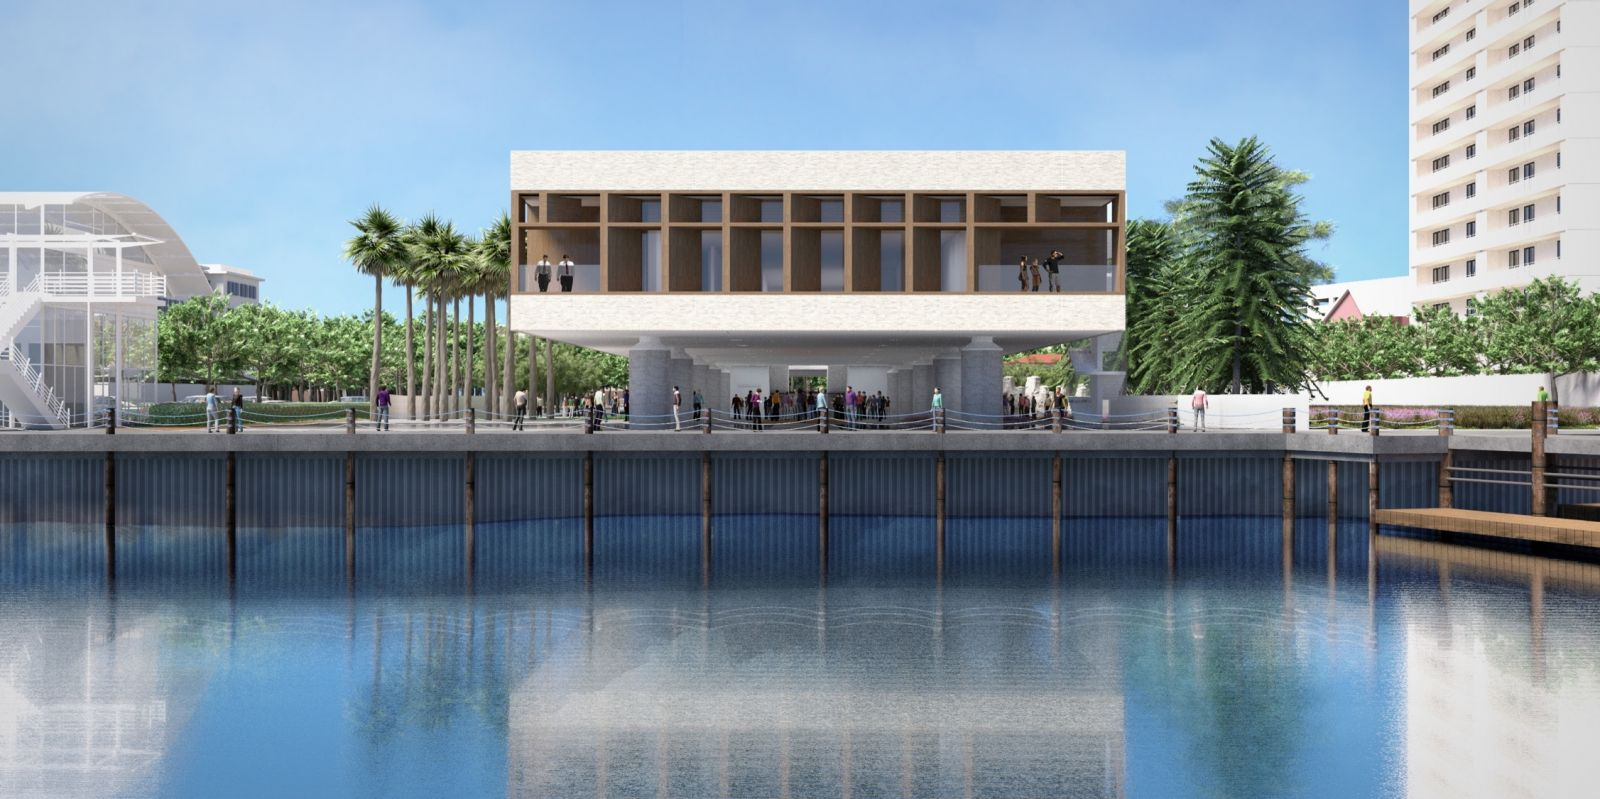 Five national and international foundations have provided a total of $1 million for the International African American Museum, which is planning to break ground on the former site of Gadsden's Wharf next year. (Rendering/Provided)